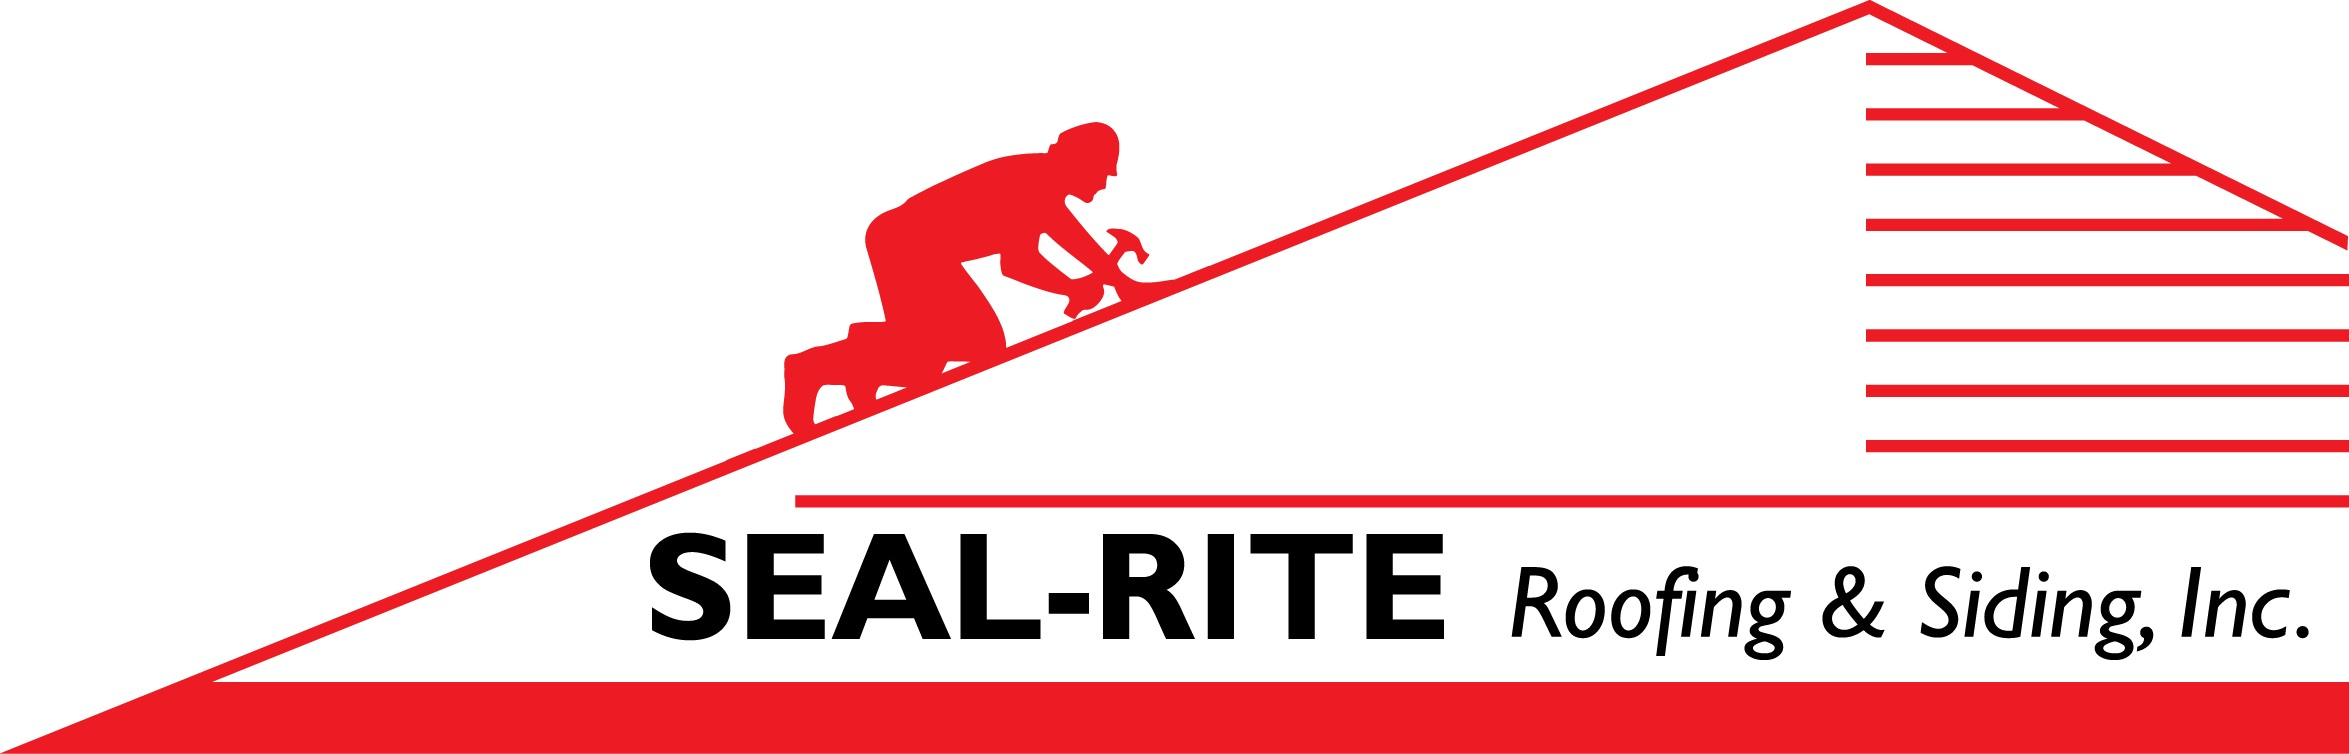 Seal-Rite Roofing & Siding Logo